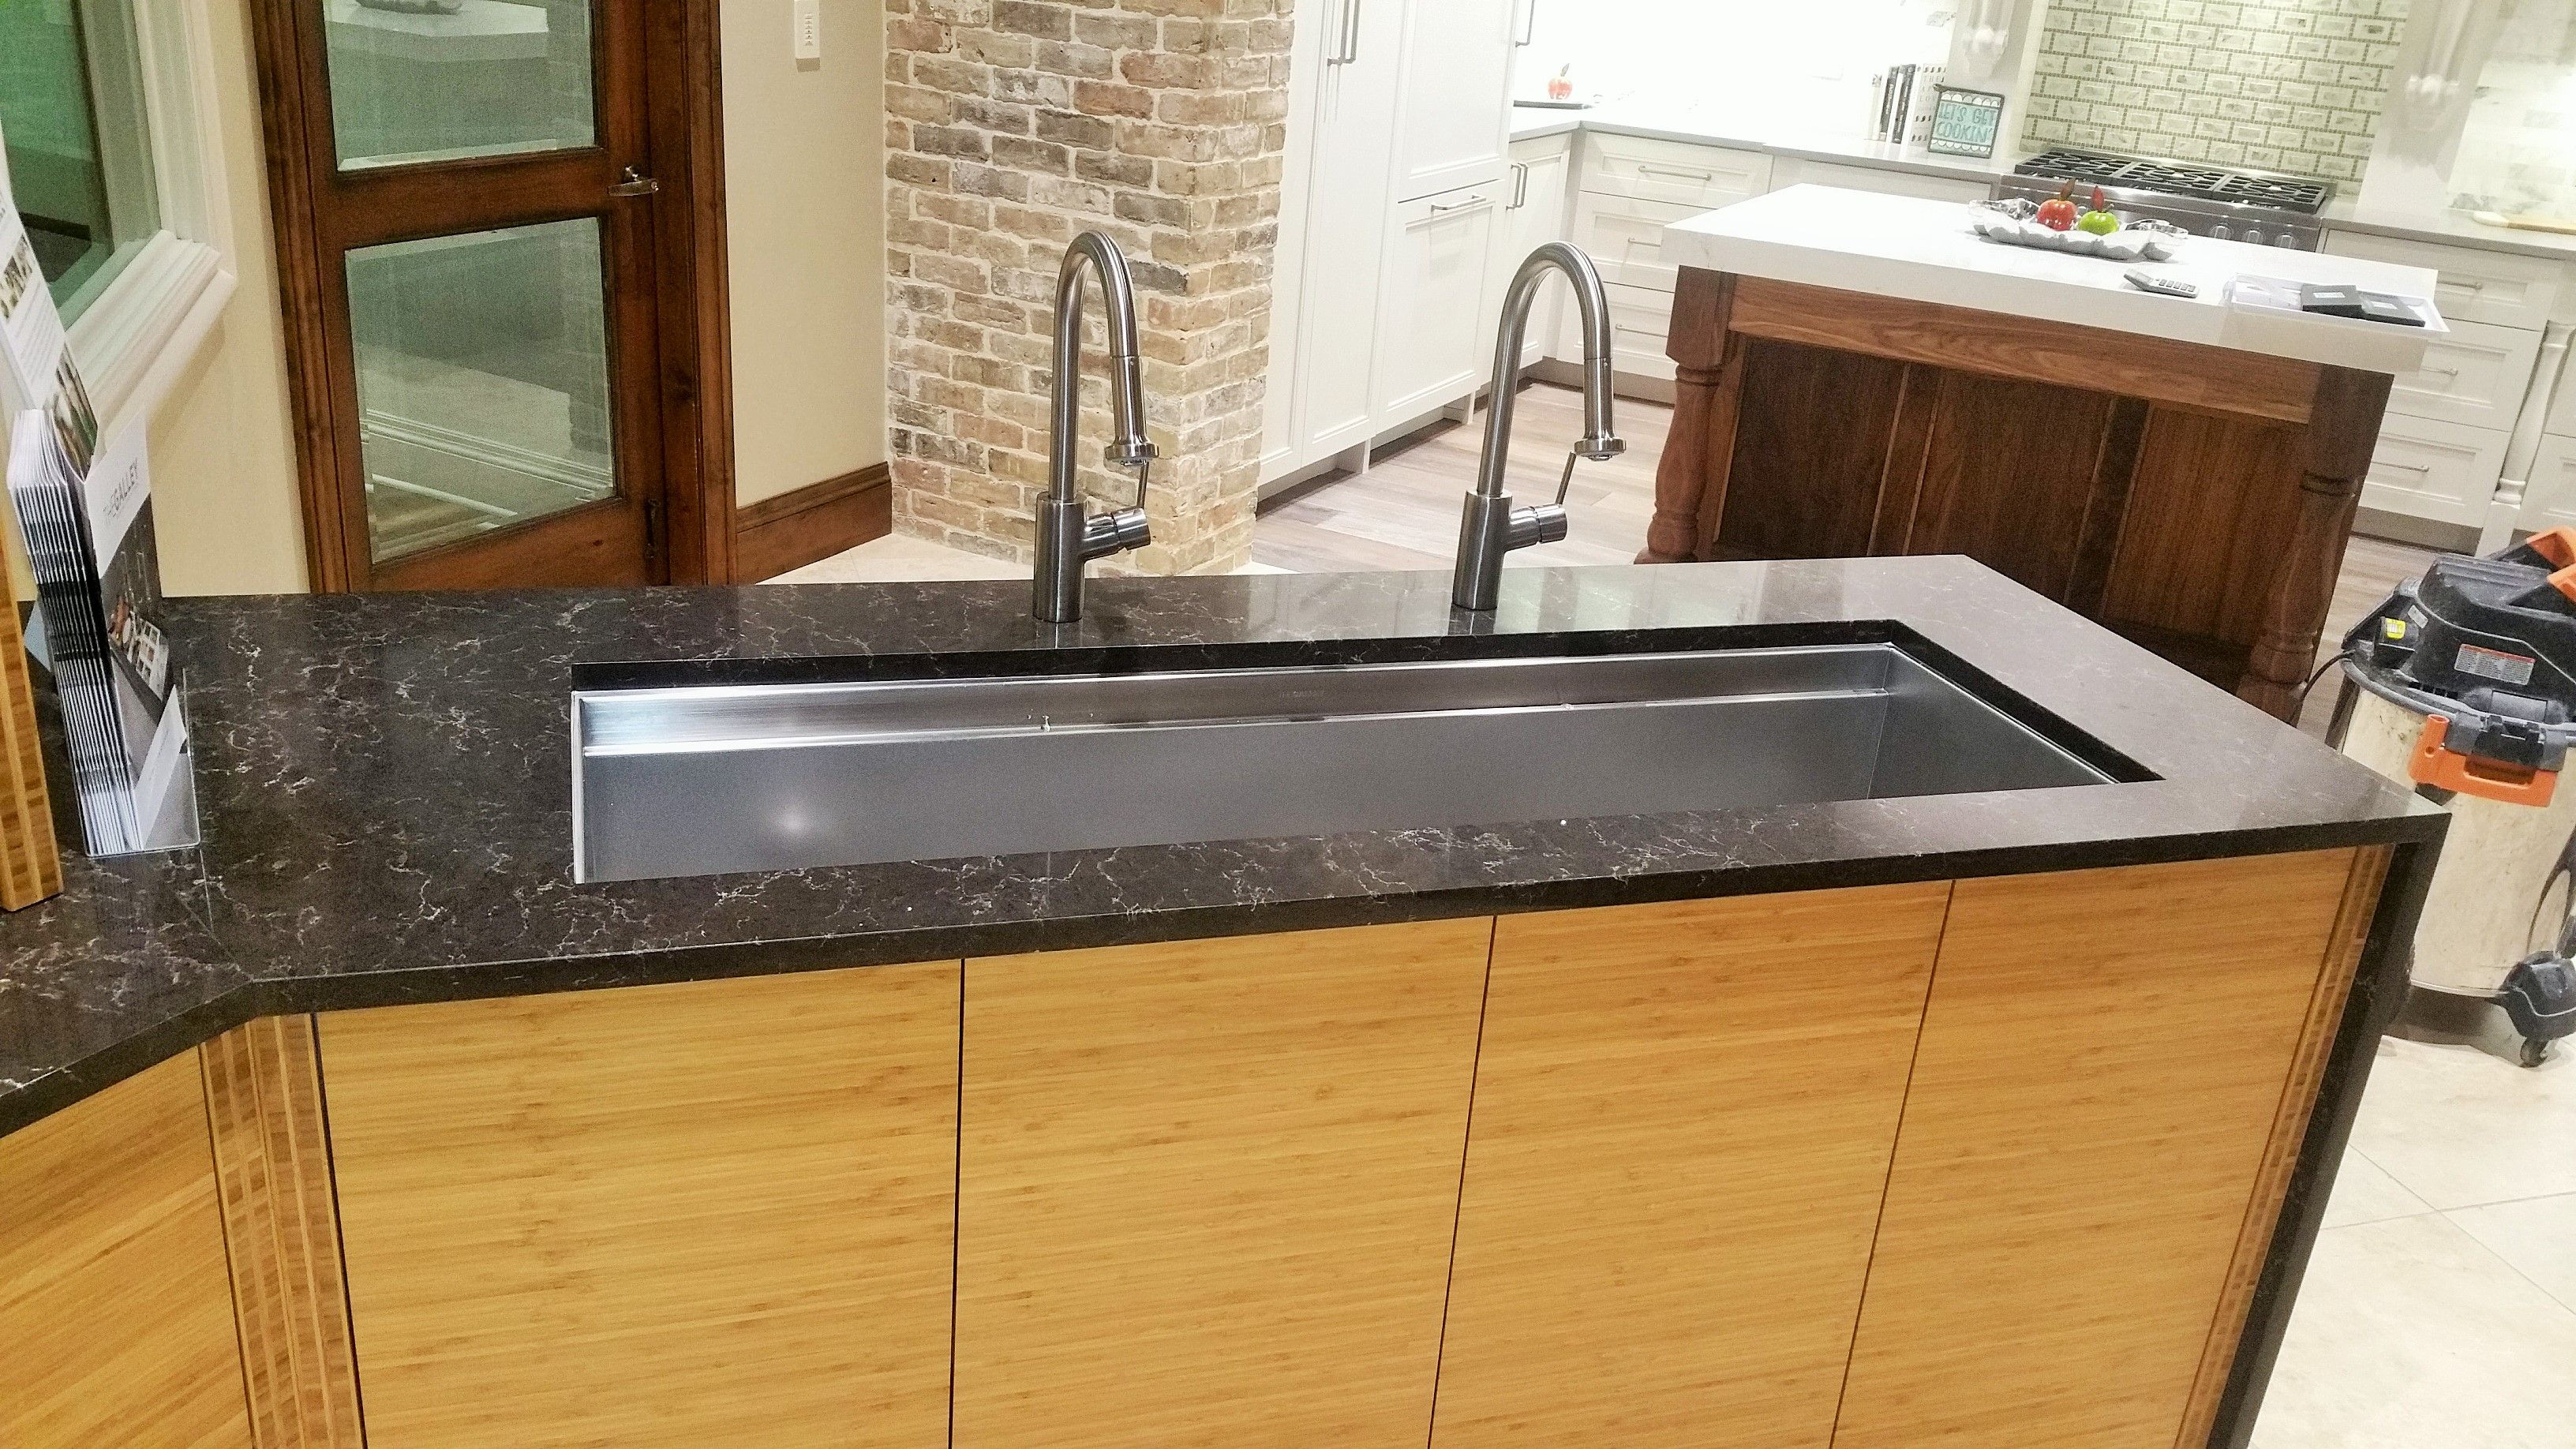 Ceasarstone Woodlands Countertop Custom Countertops Quartz Galley Sink Our Custom